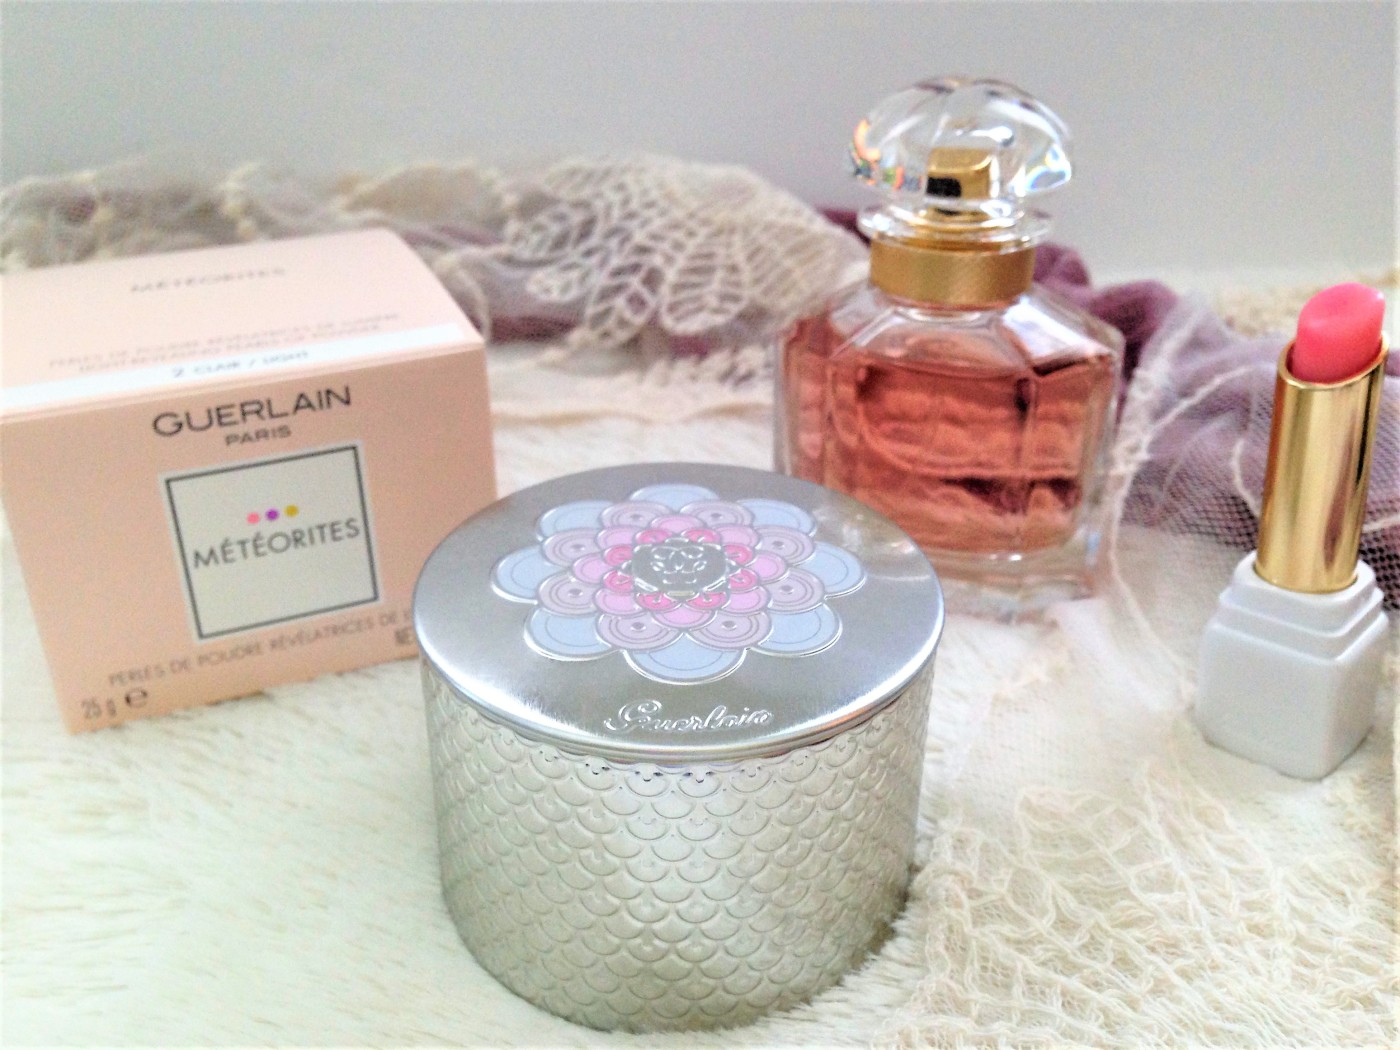 guerlain meteorites pearls in clair review